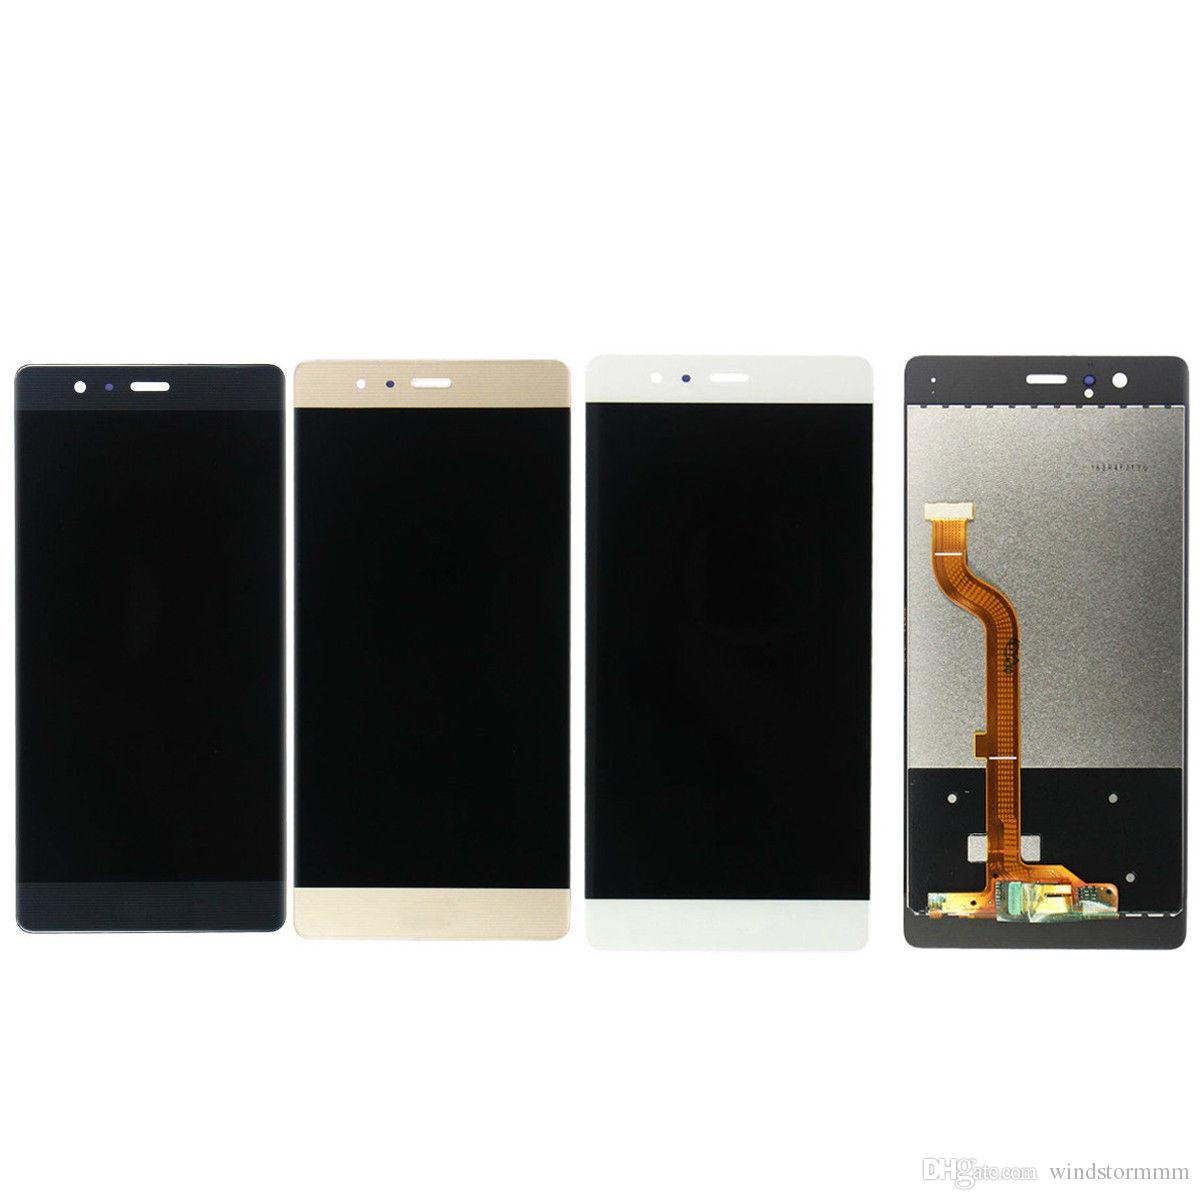 Original Digitizer LCD Display Glass Touch Screen Full For Huawei P9 Delivery within 24 hours free DHL